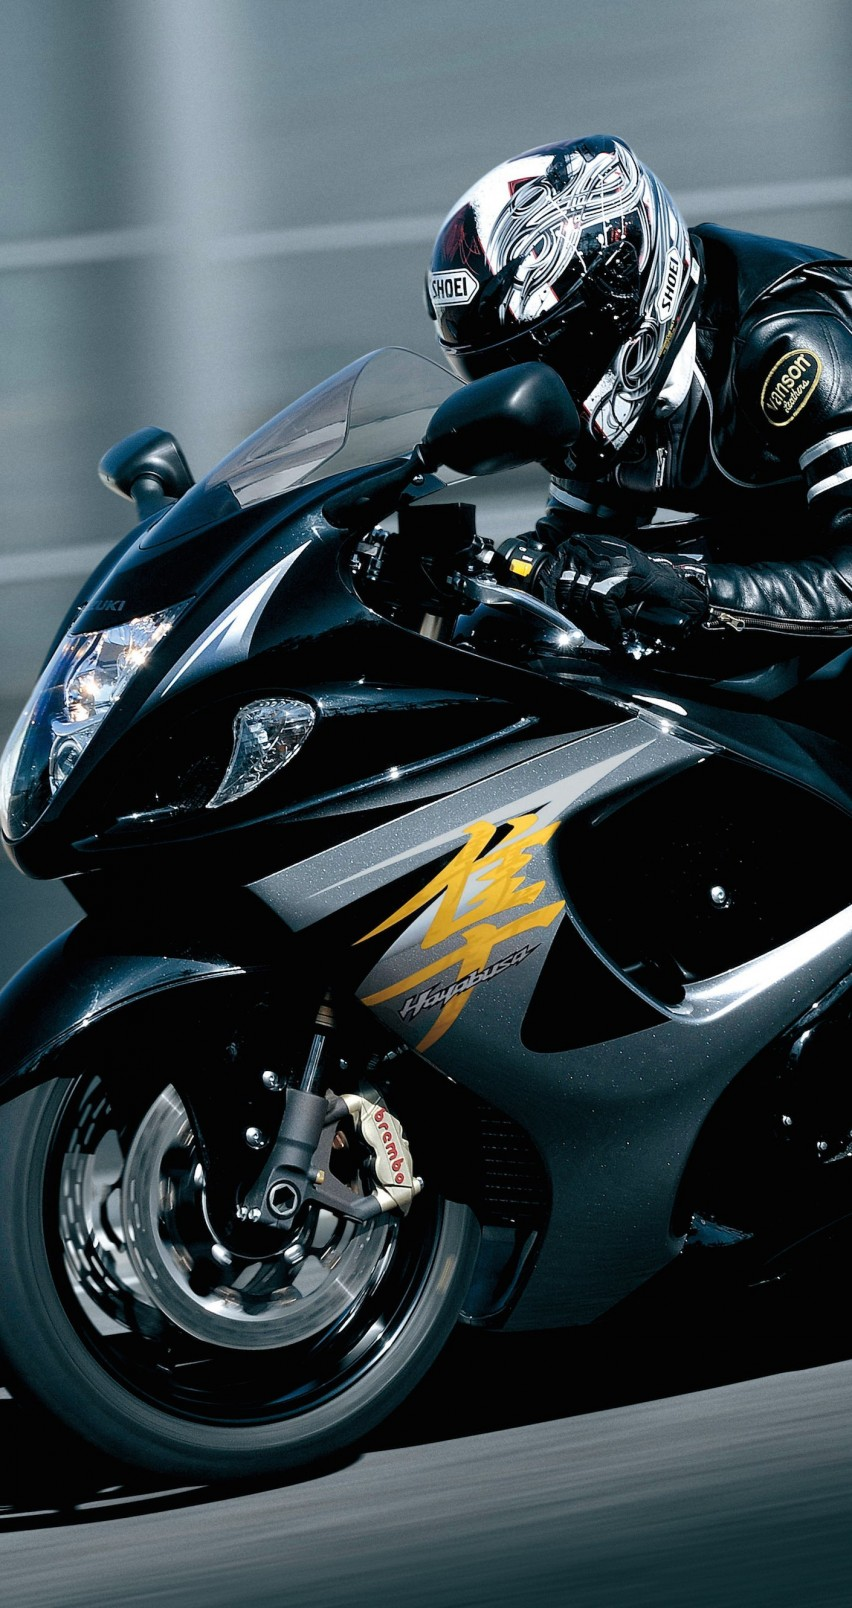 Suzuki Hayabusa GSX 1300R Wallpaper for Apple iPhone 6 / 6s